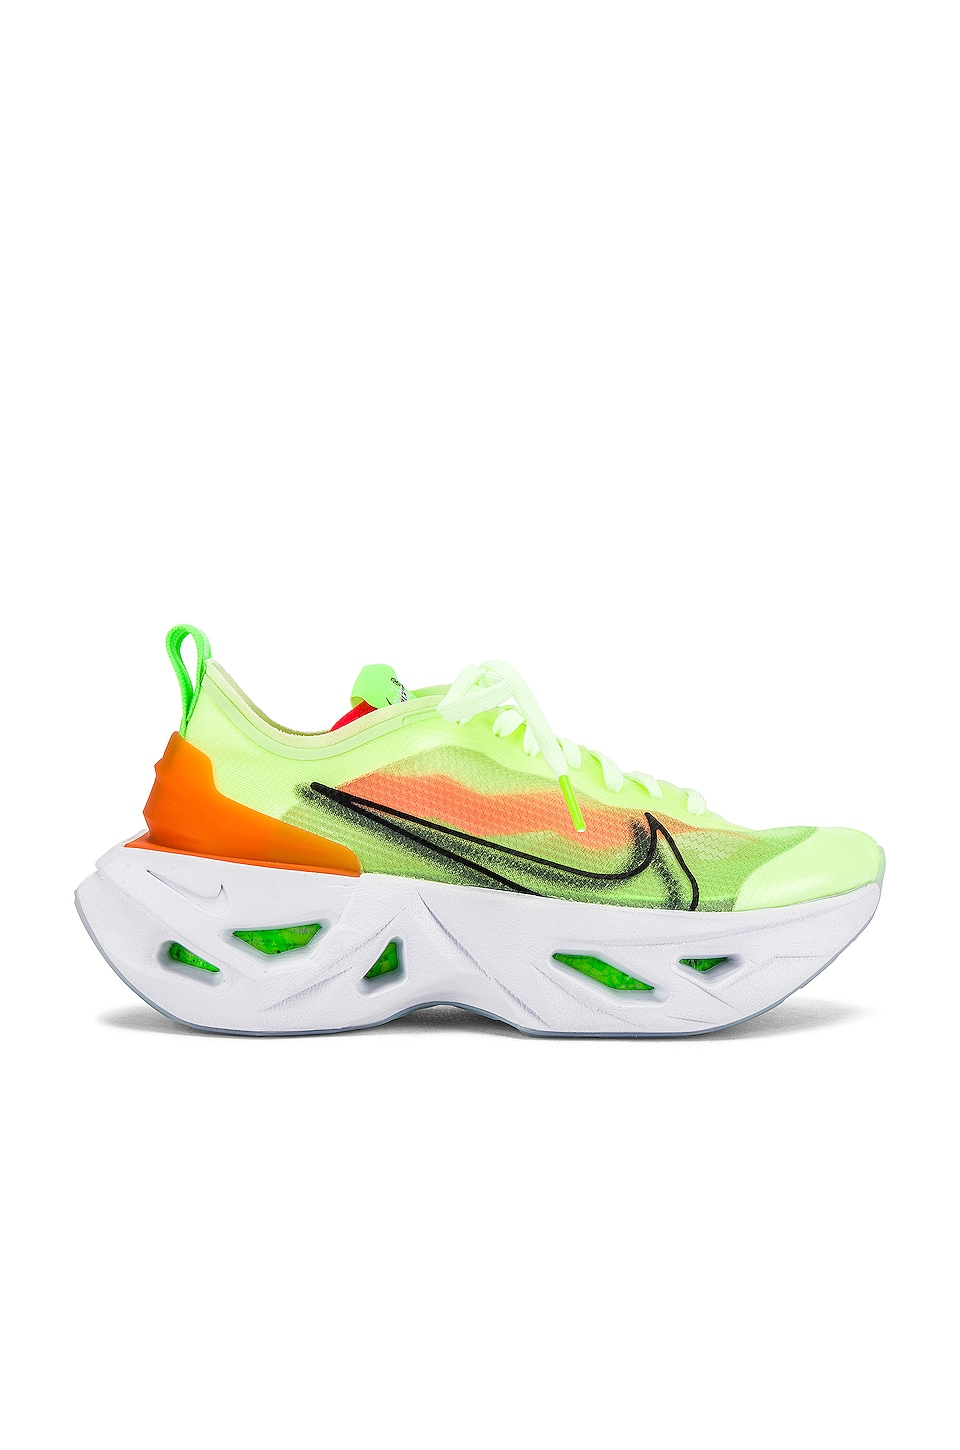 Nike NSW Zoom X Vista Grind Sneaker in Barely Volt, Black, Electric Green Starfish & Crimson Half Blue